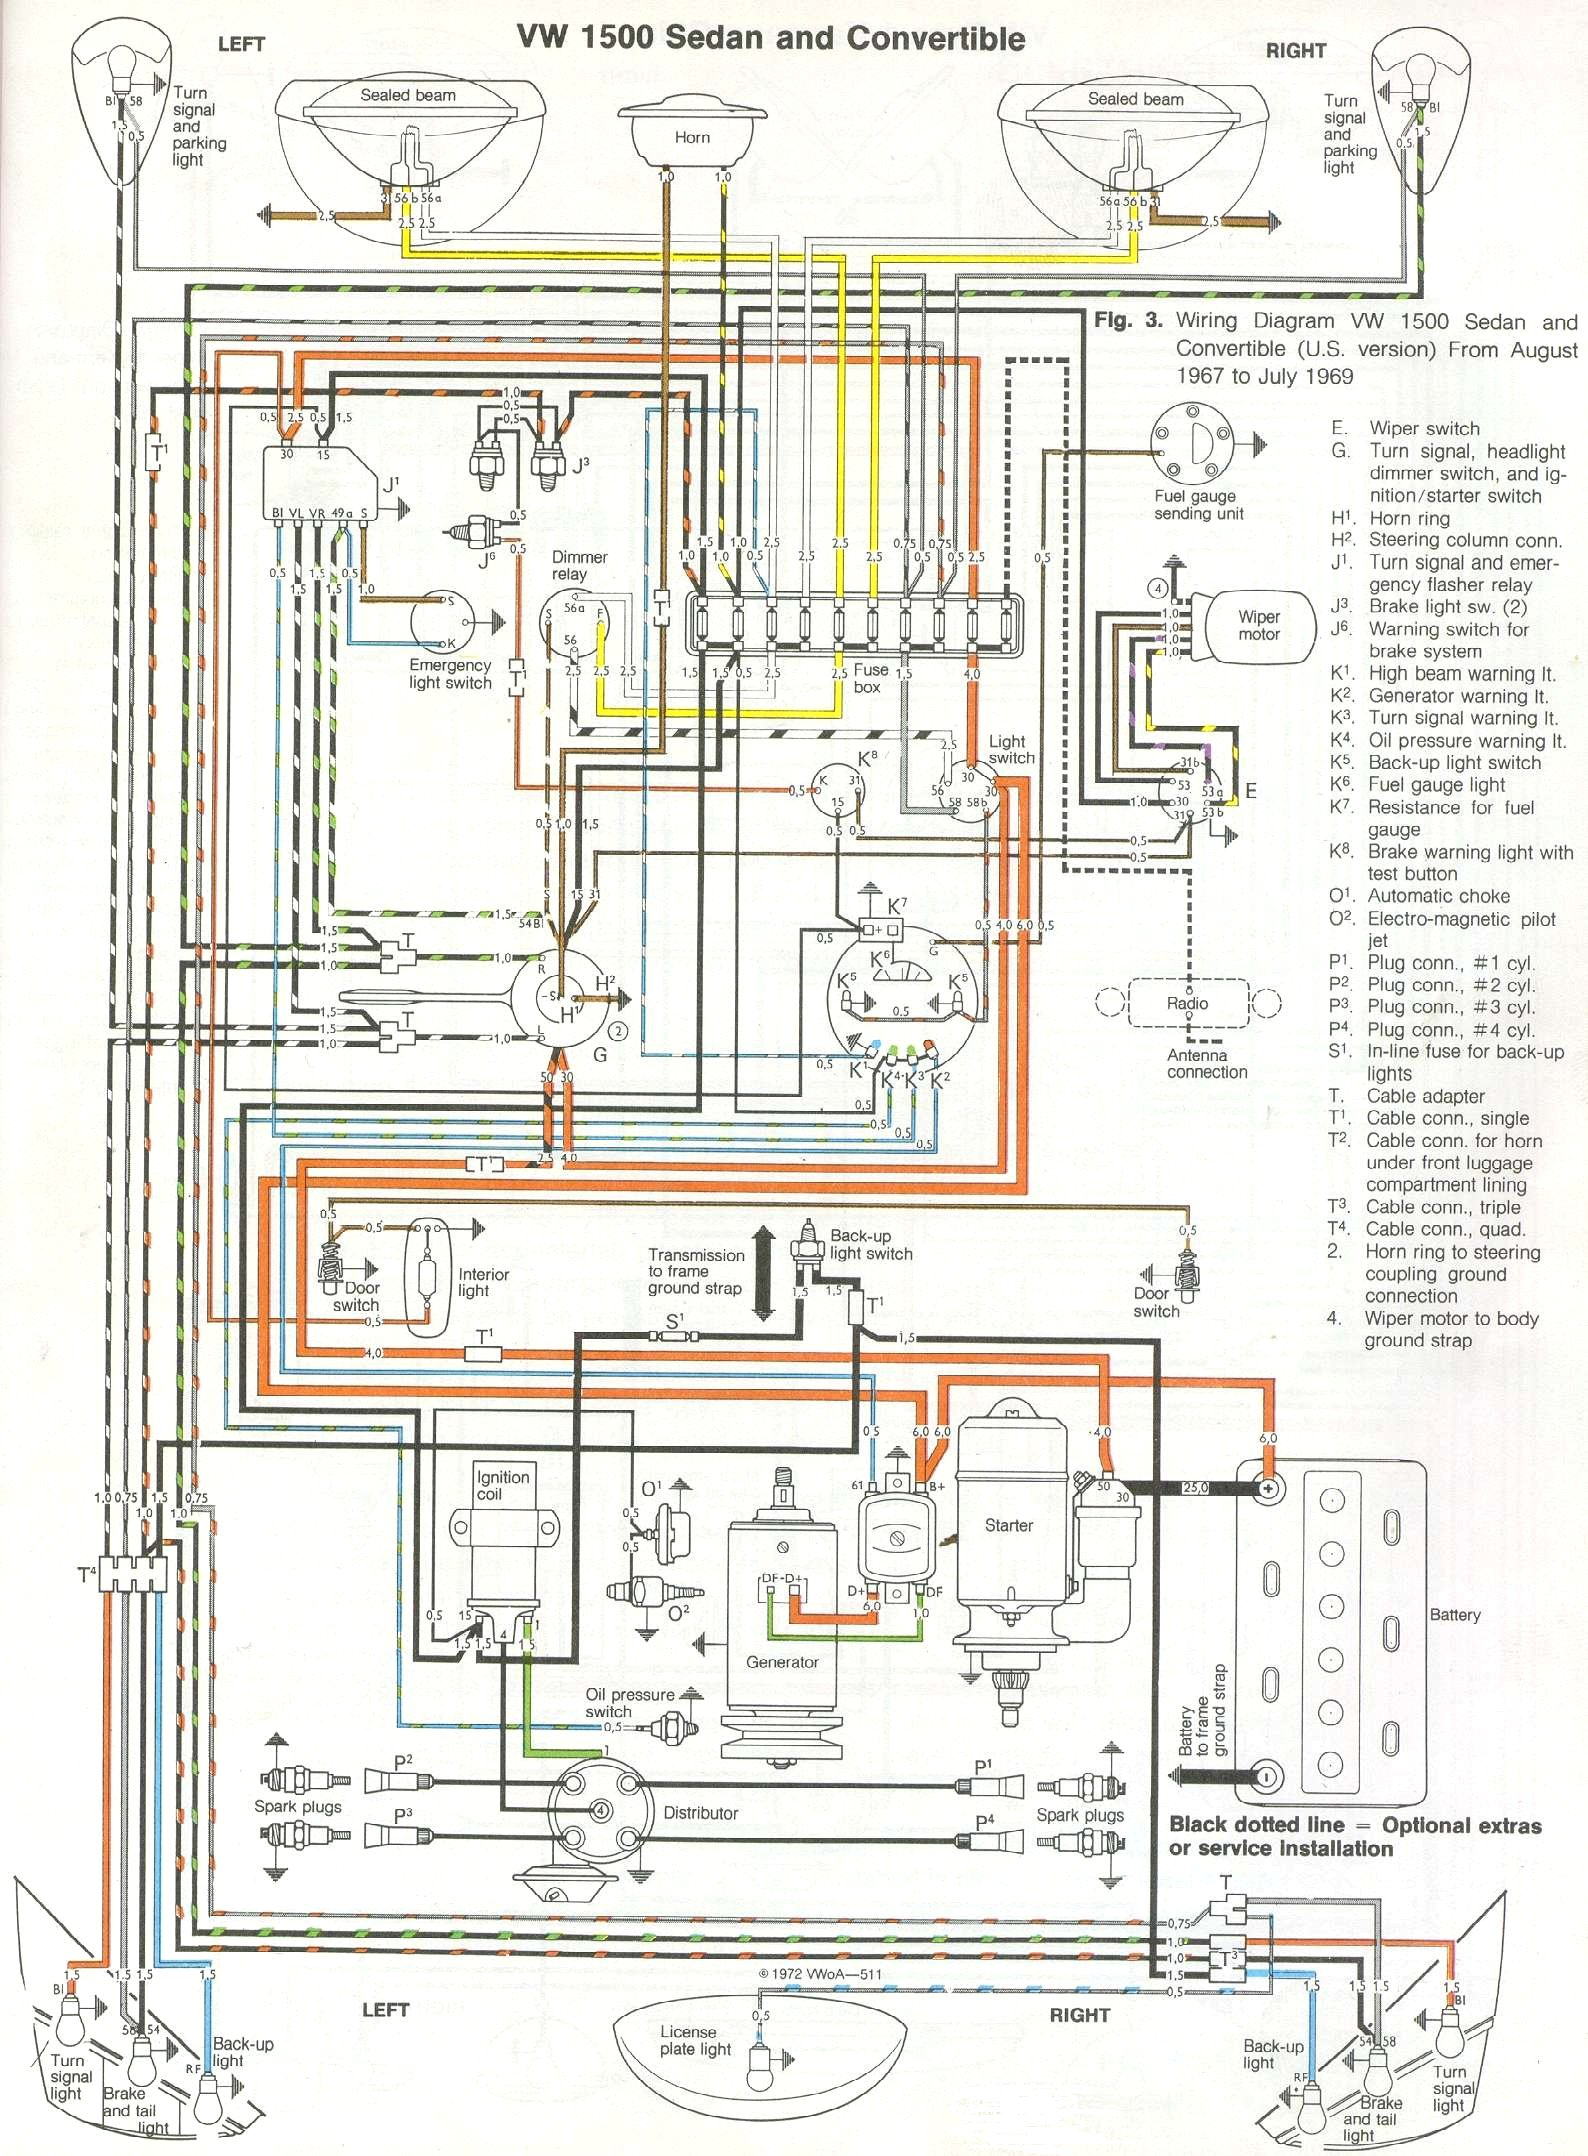 bug_6869 thesamba com type 1 wiring diagrams Fuel Gauge Wiring Diagram at suagrazia.org